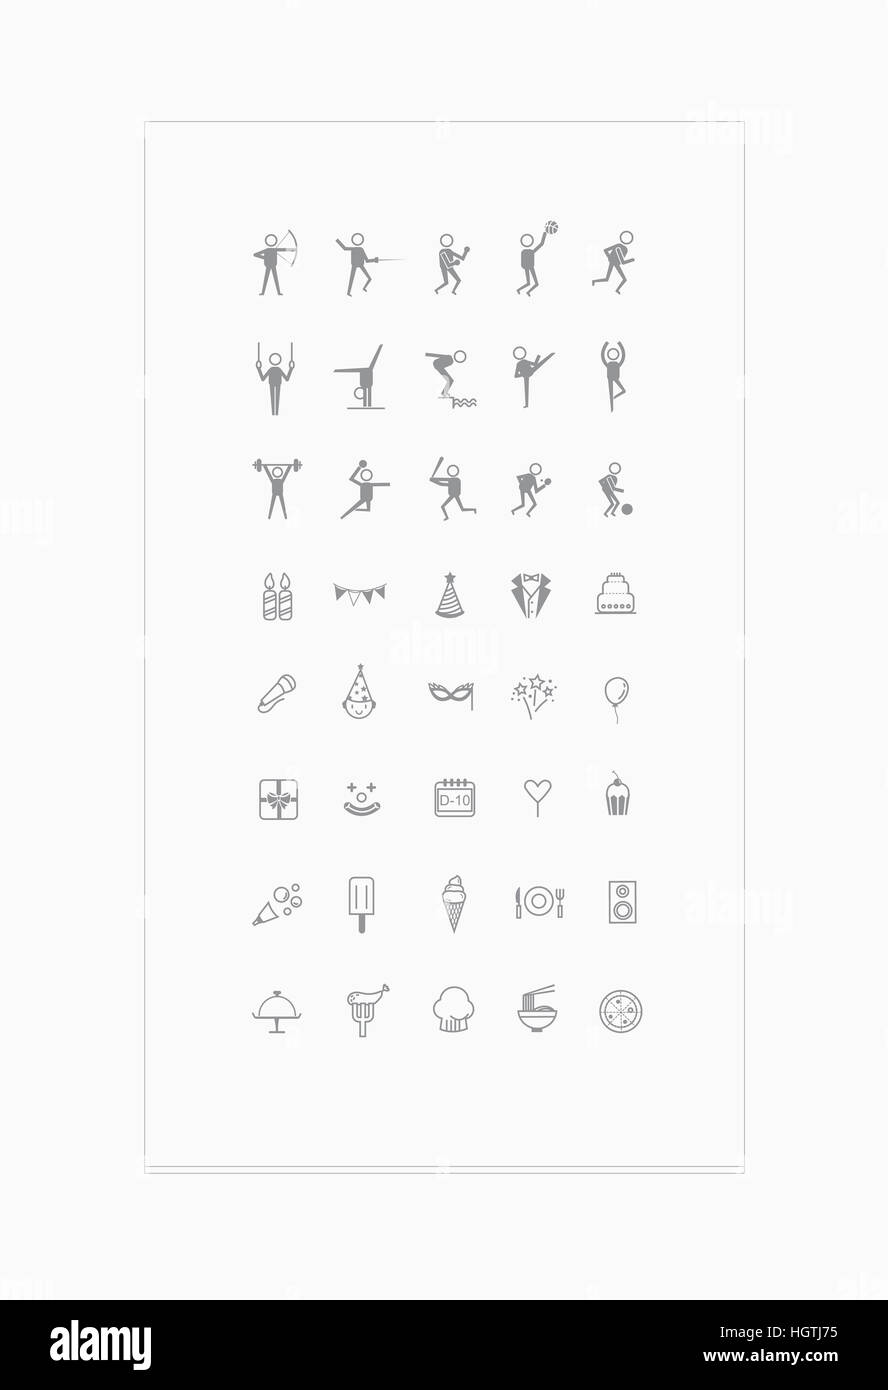 Set of various line icons - Stock Image